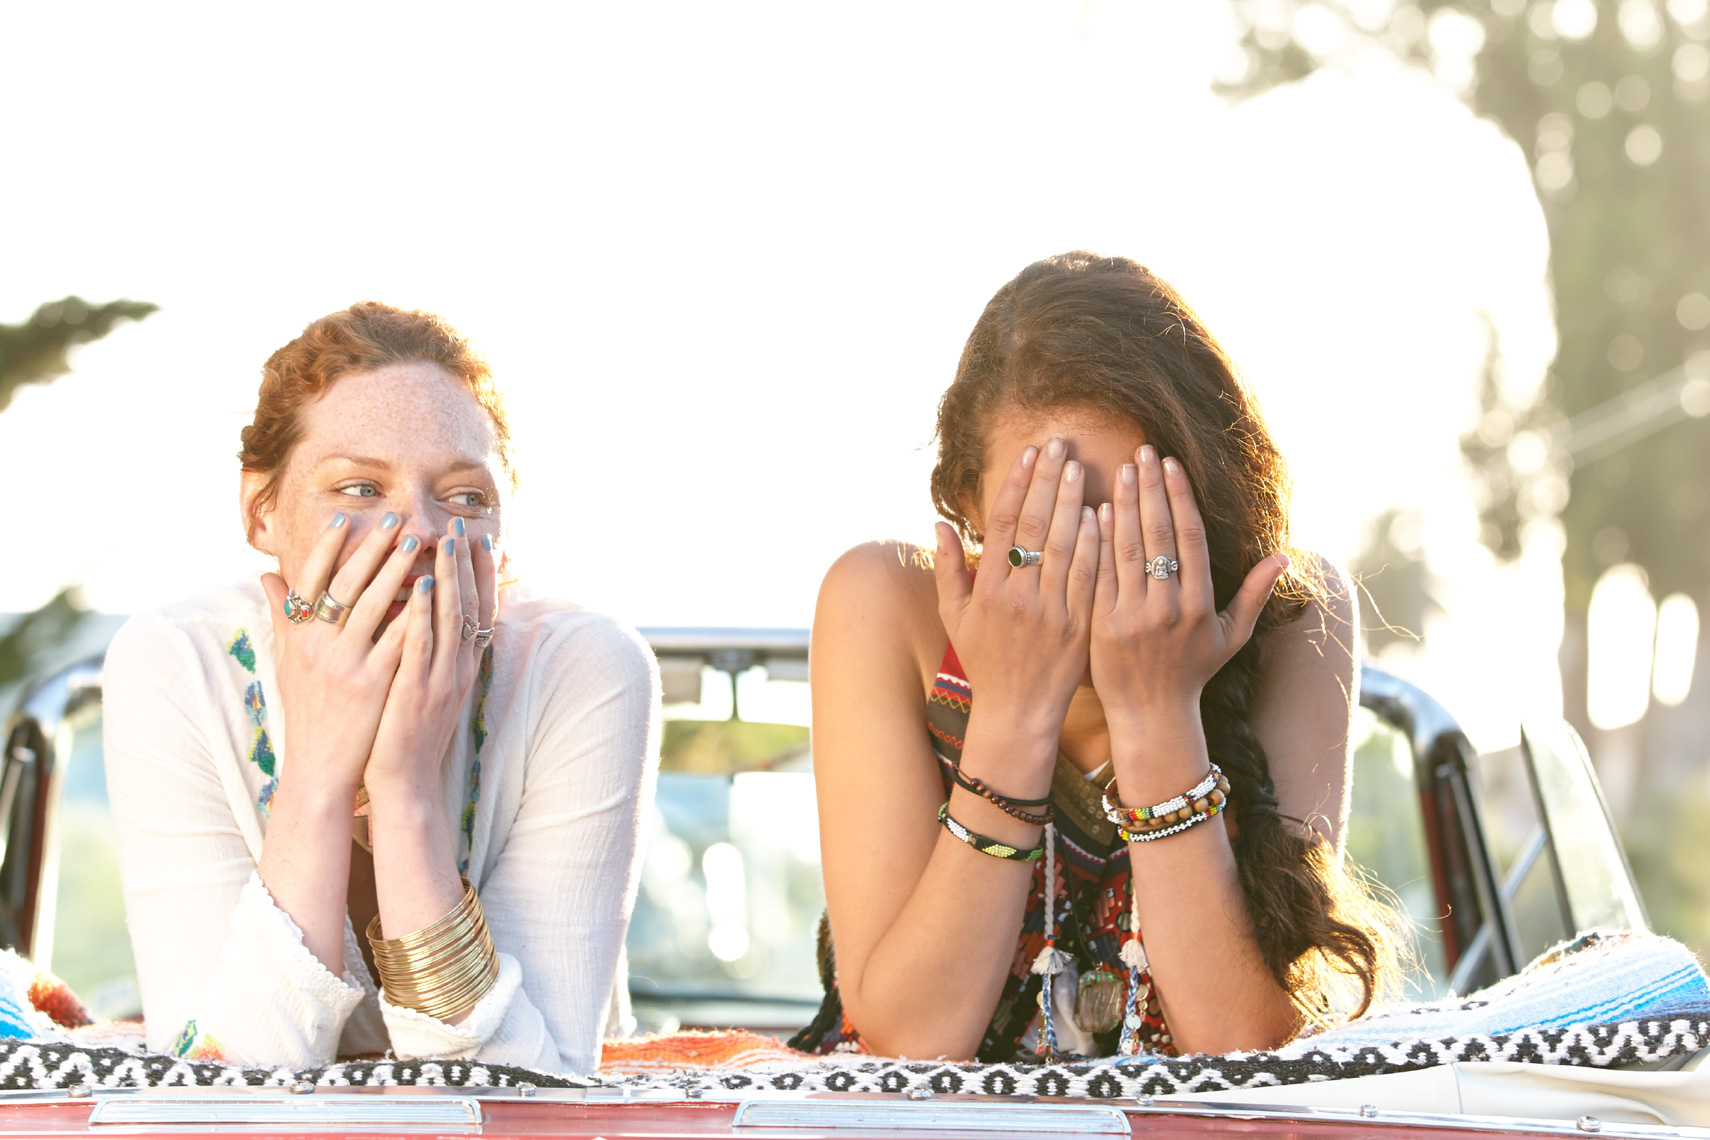 Two young women smiling over the back of a convertible car with the top down and hands covering their faces